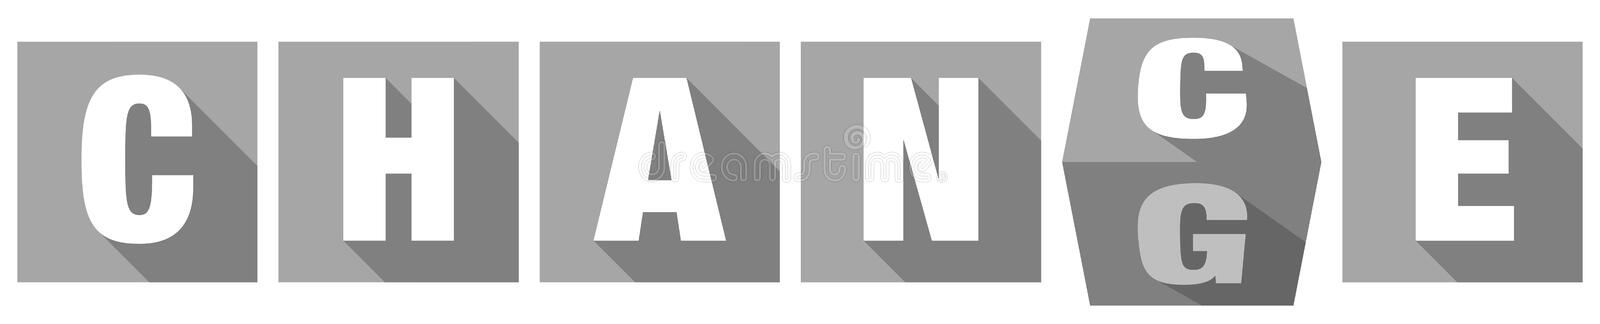 Abstract Gray Dices Turning From Chance To Change vector illustration